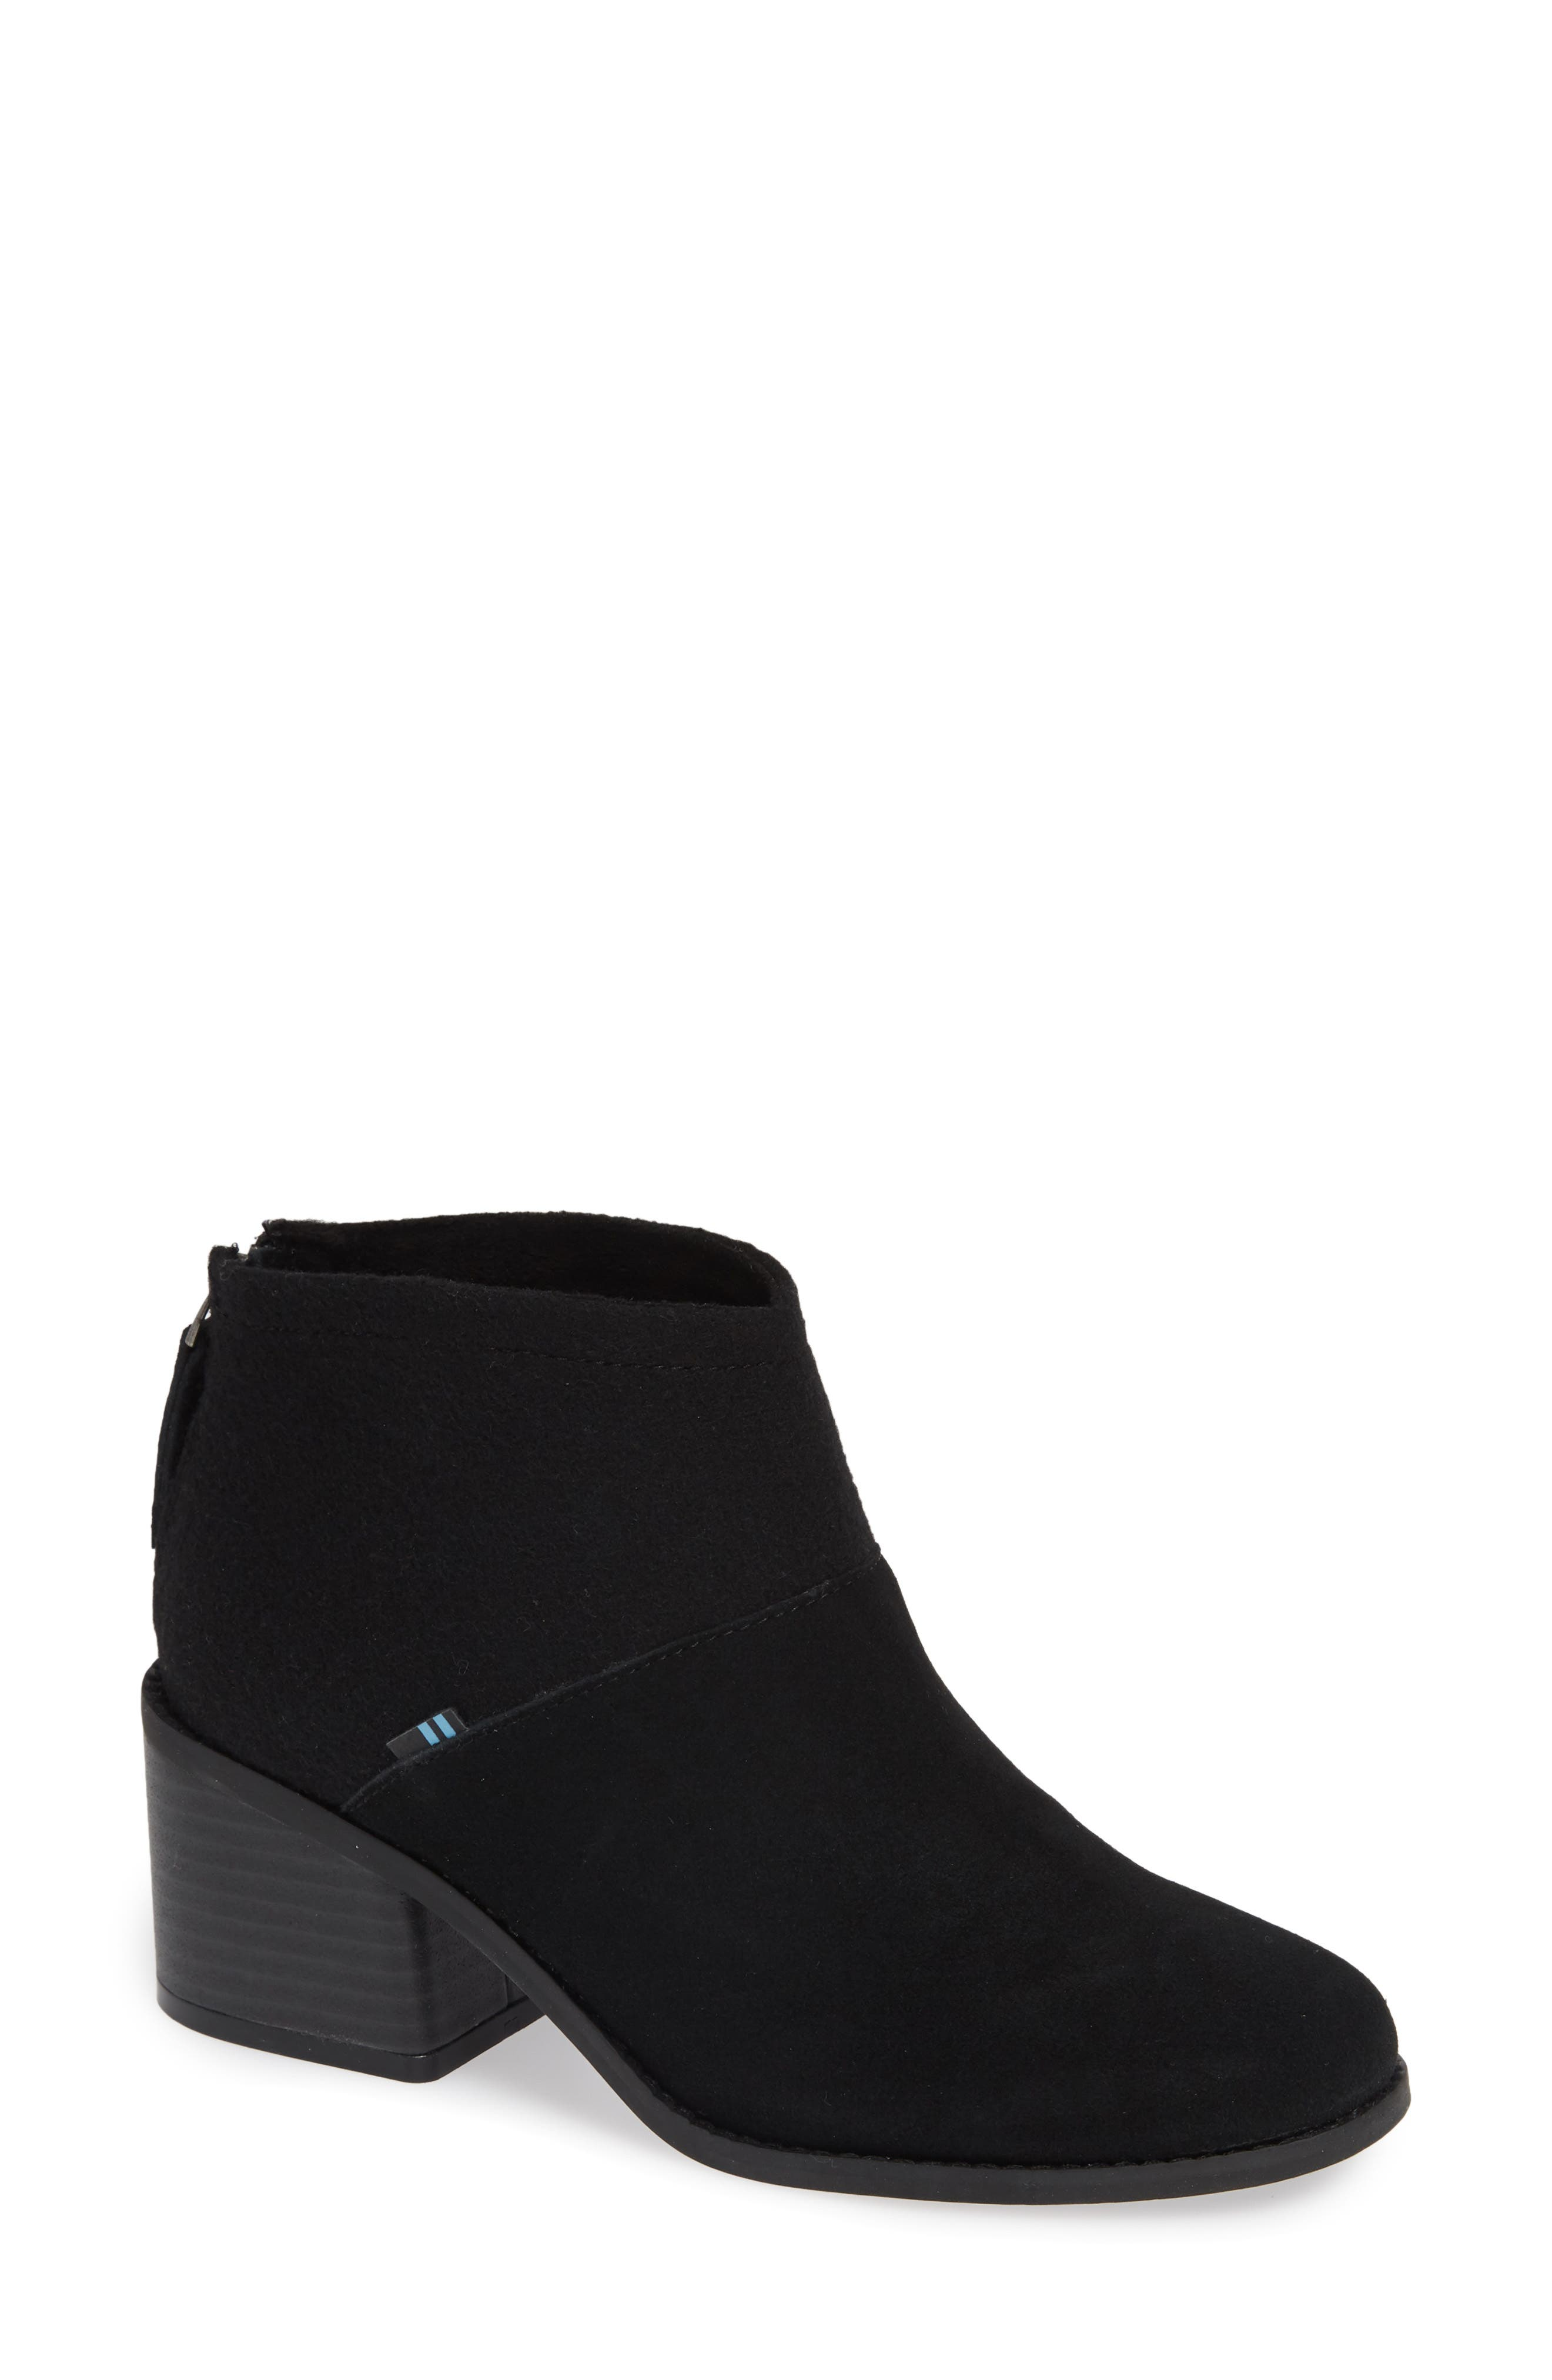 TOMS Women'S Lacy Round Toe Suede Bootie in Black Suede